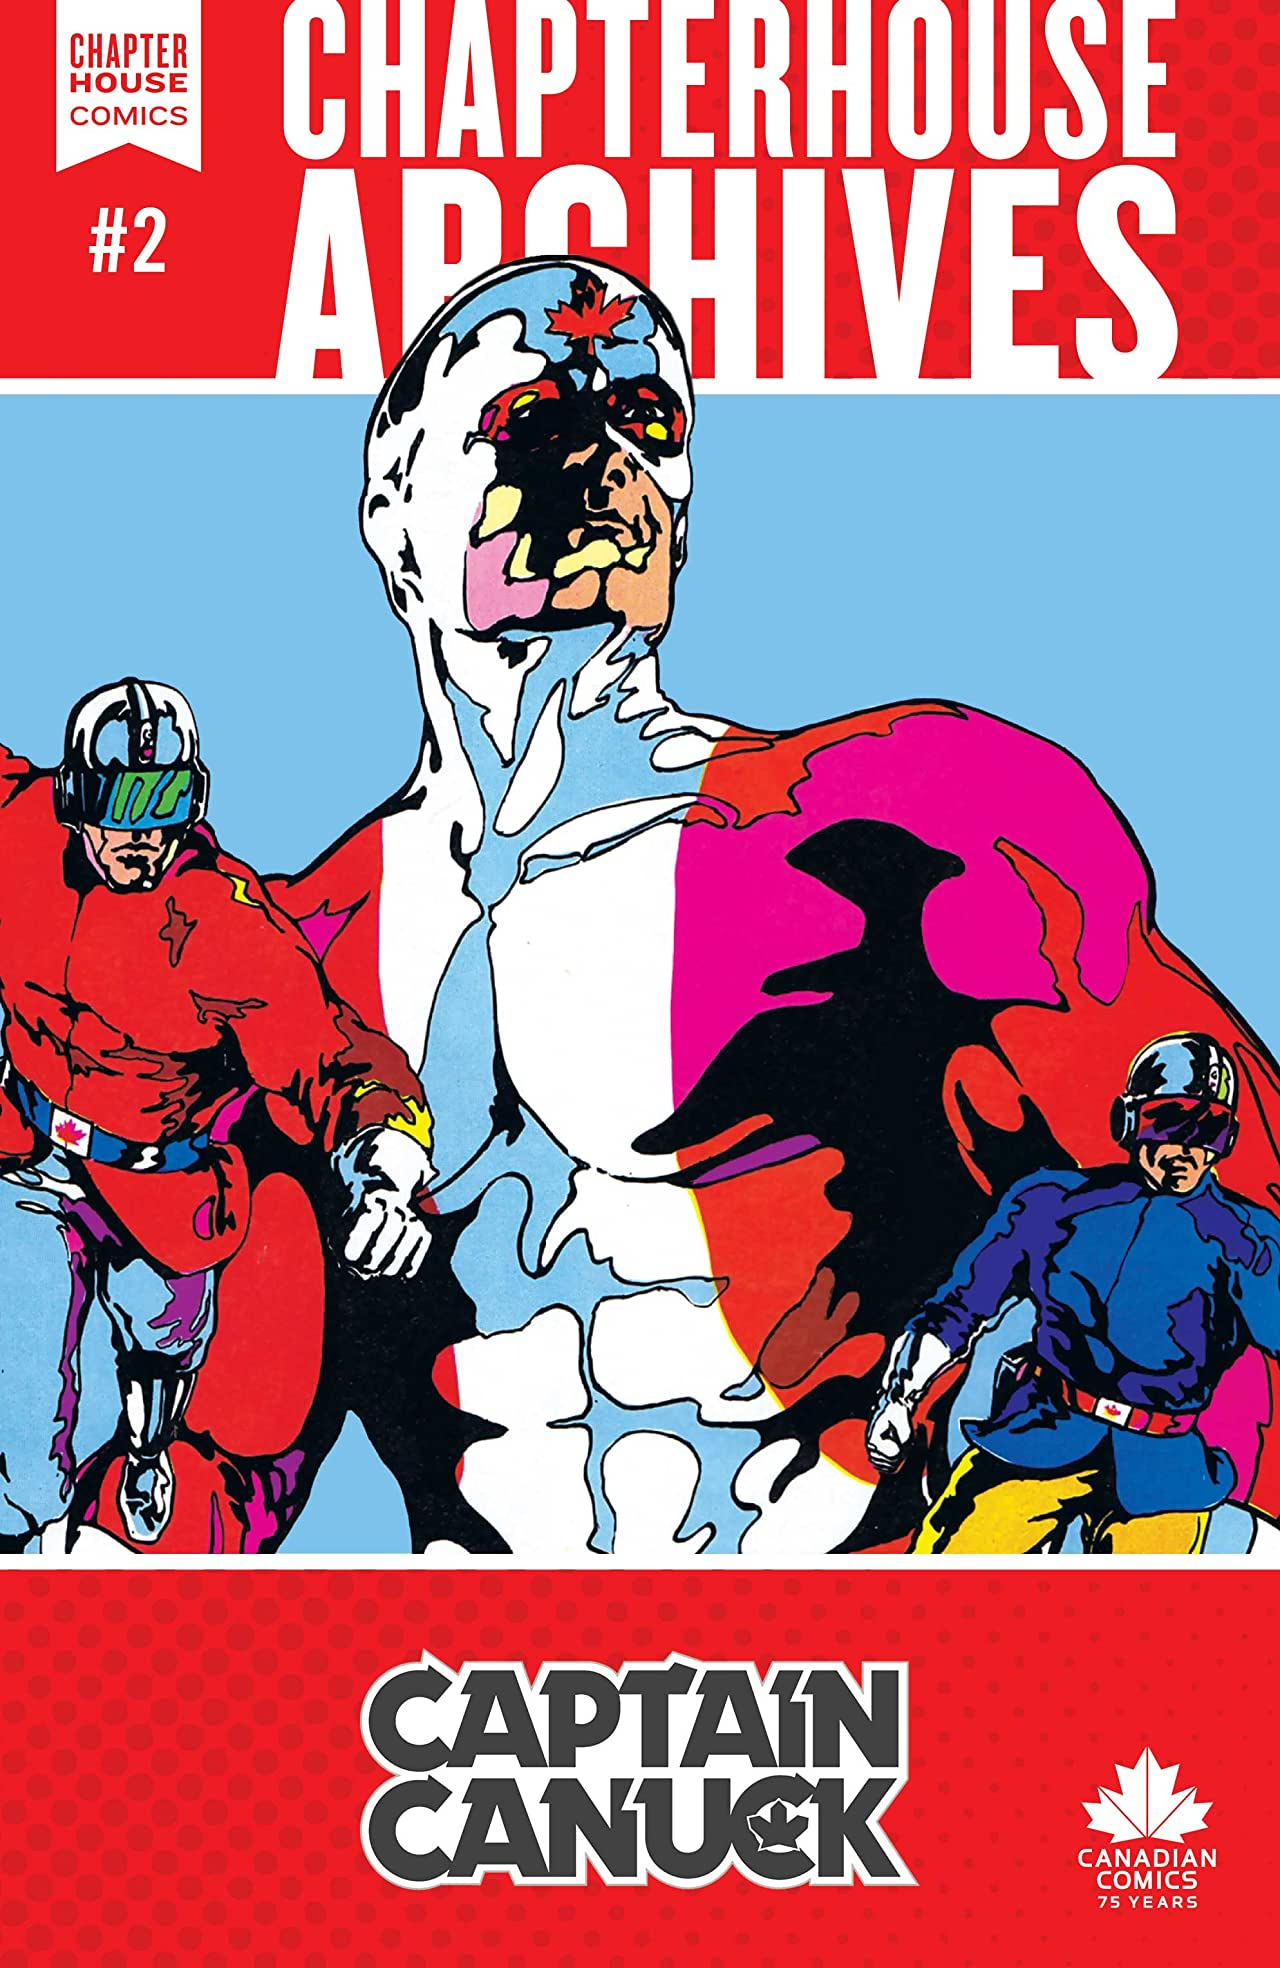 Chapterhouse Archives: Captain Canuck #2